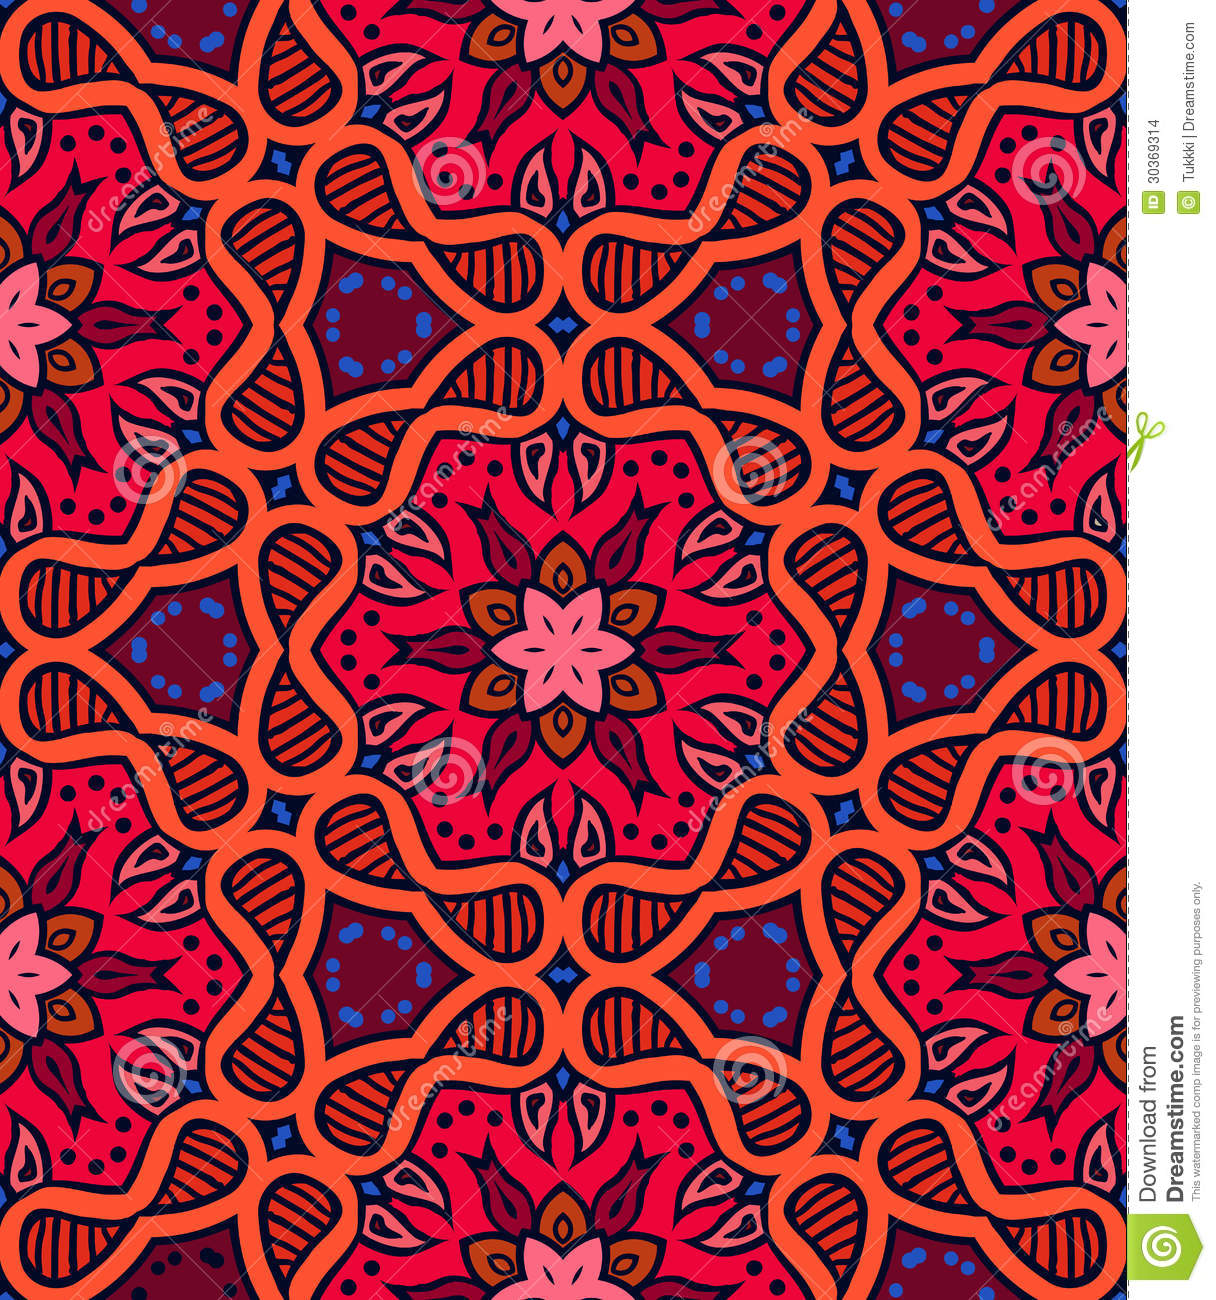 Crochet Home Decor Free Patterns Bold Pattern With Indian Motifs Stock Vector Image 30369314